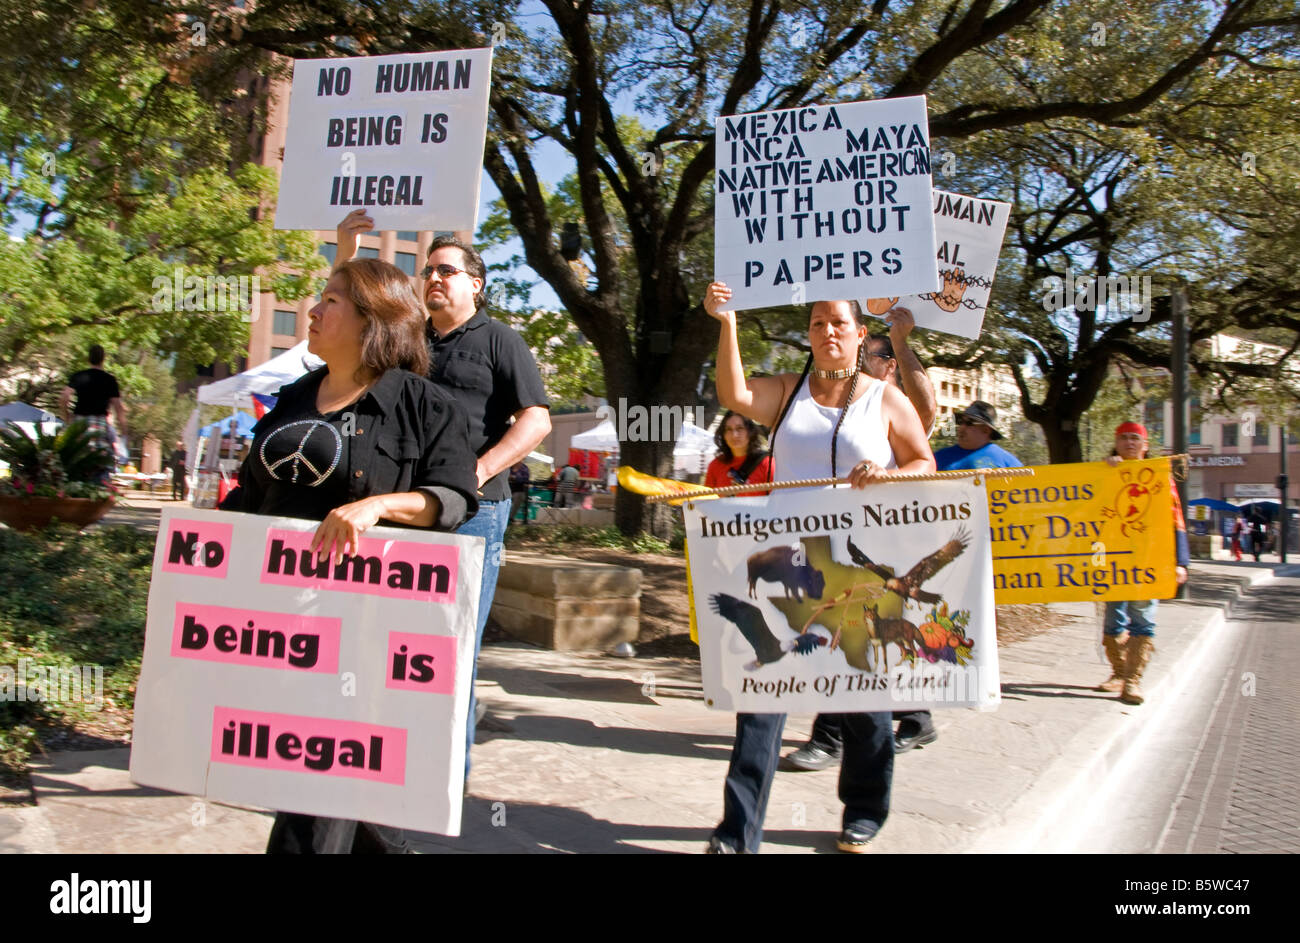 Hispanics and native Americans demonstrating for immigrant rights in downtown San Antonio, Texas Stock Photo